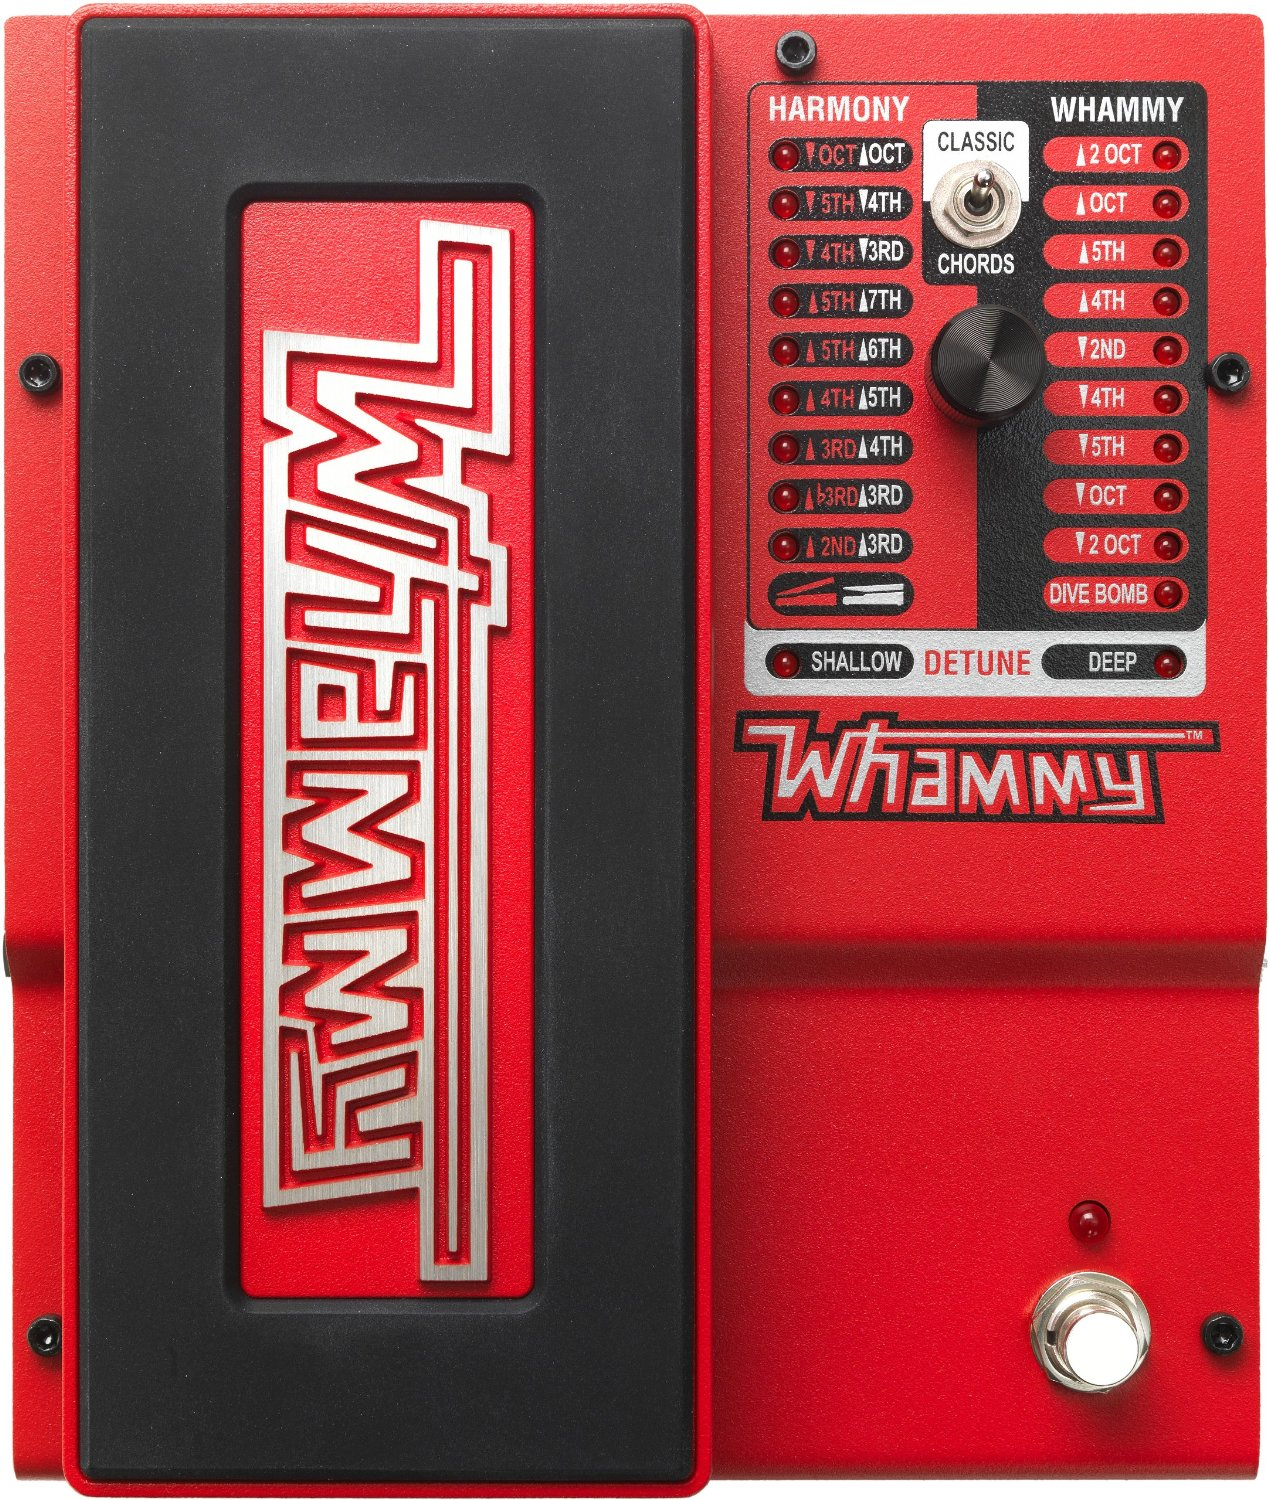 the digitech whammy pedal from the top, showing all the settings